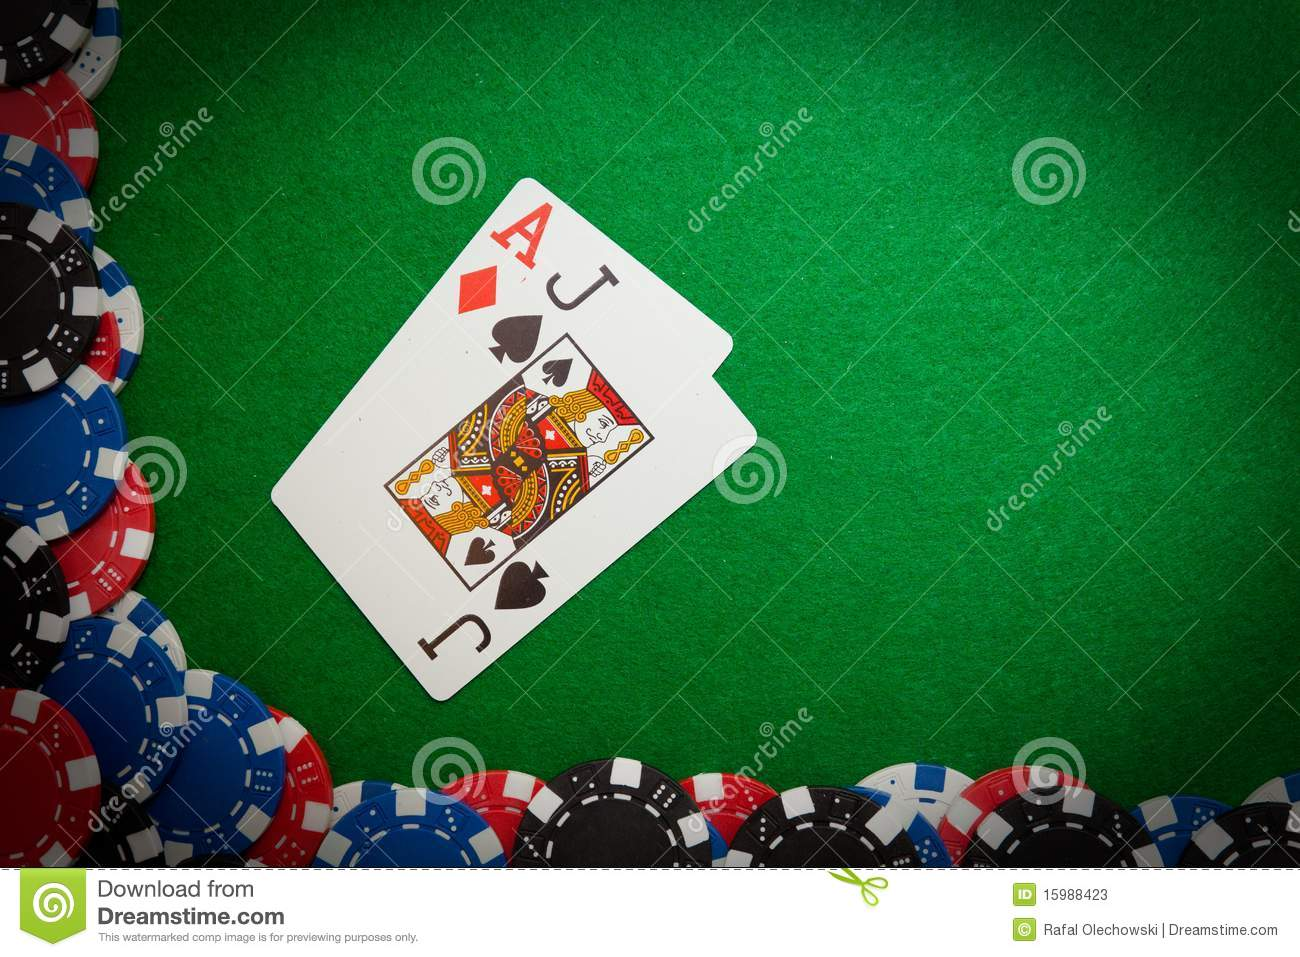 what are aces in blackjack